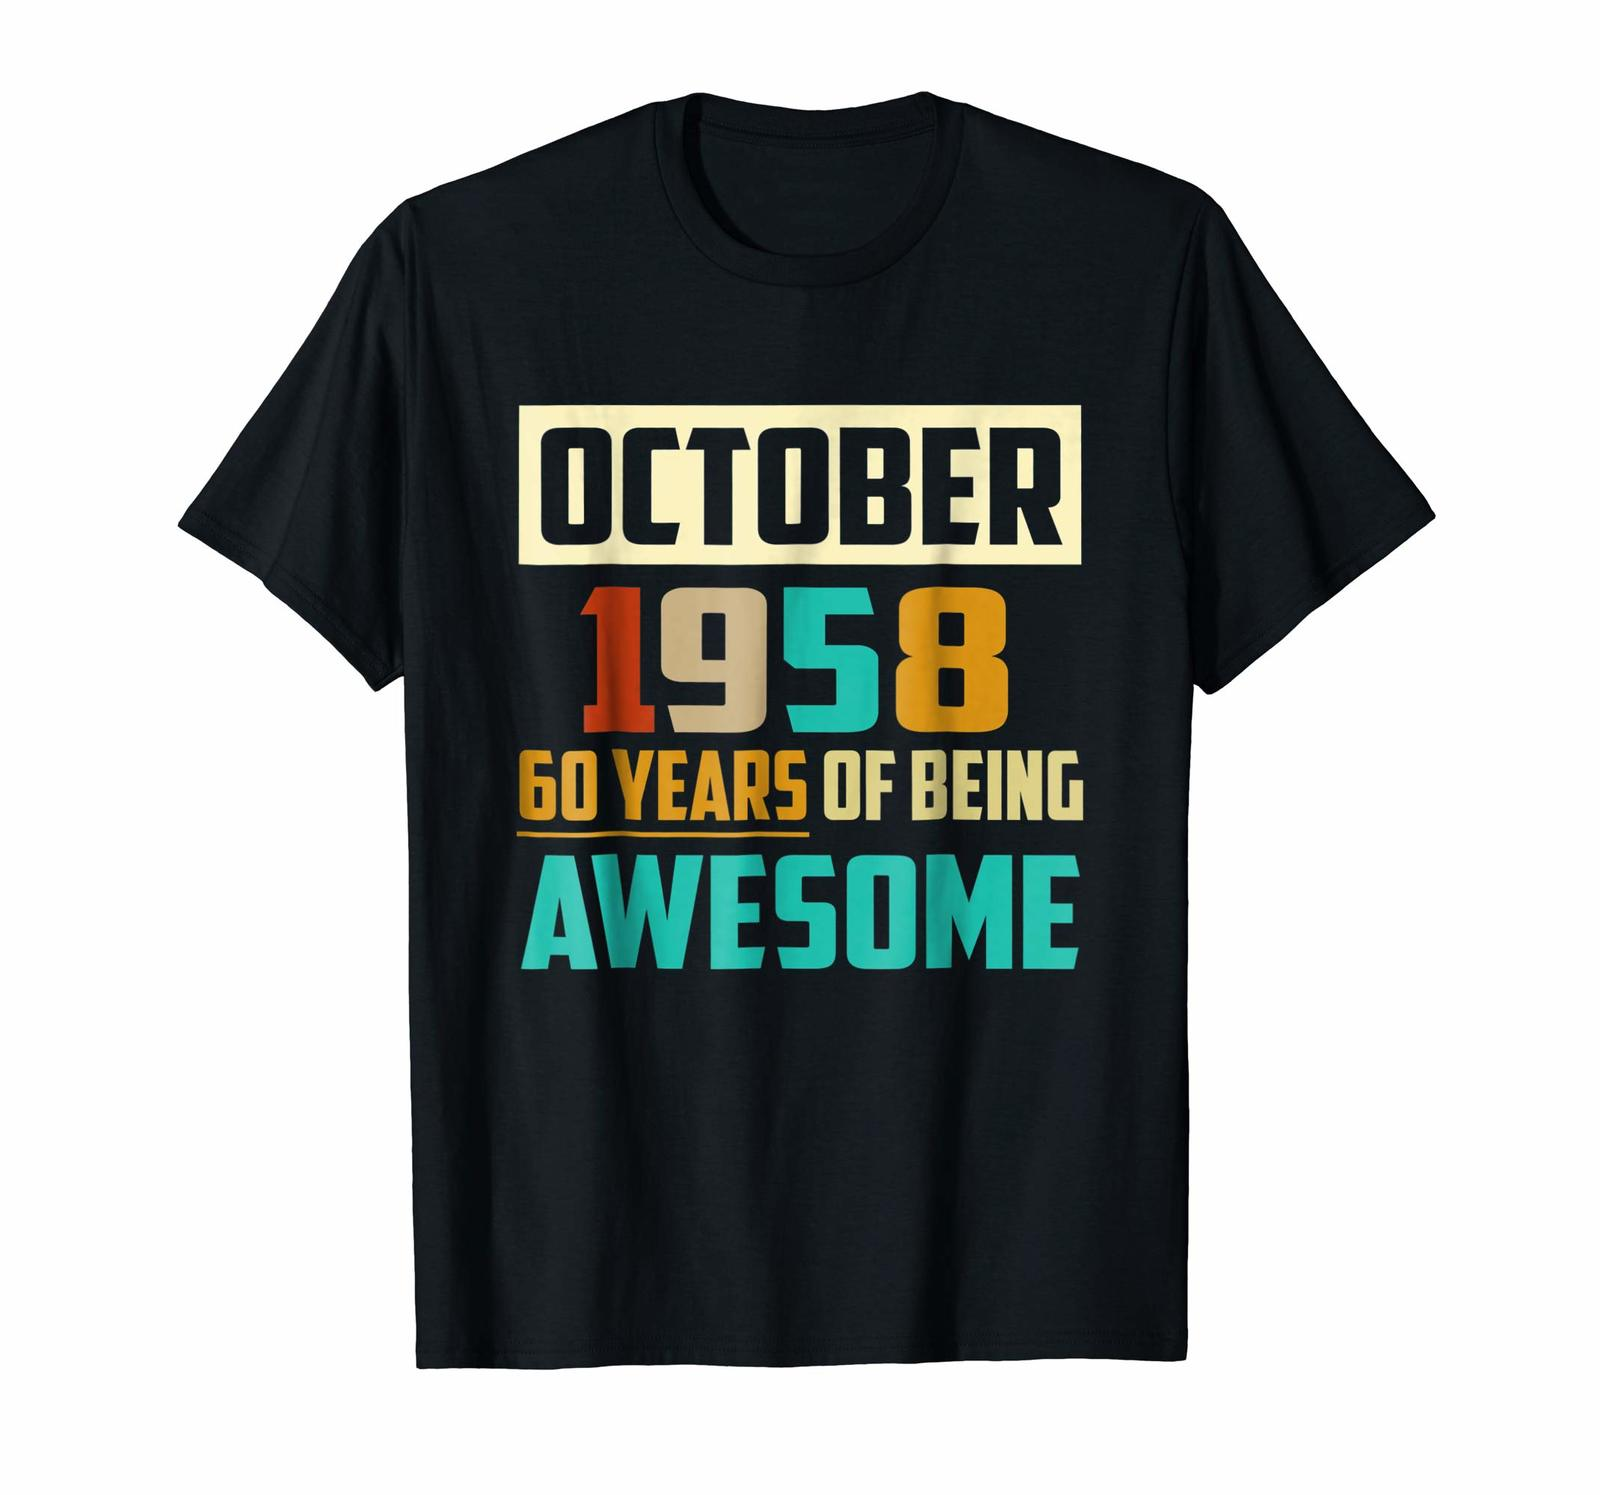 Uncle Shirts -   Birthday October 1958 - 60 Years Of Being Awesome T Shirt Men